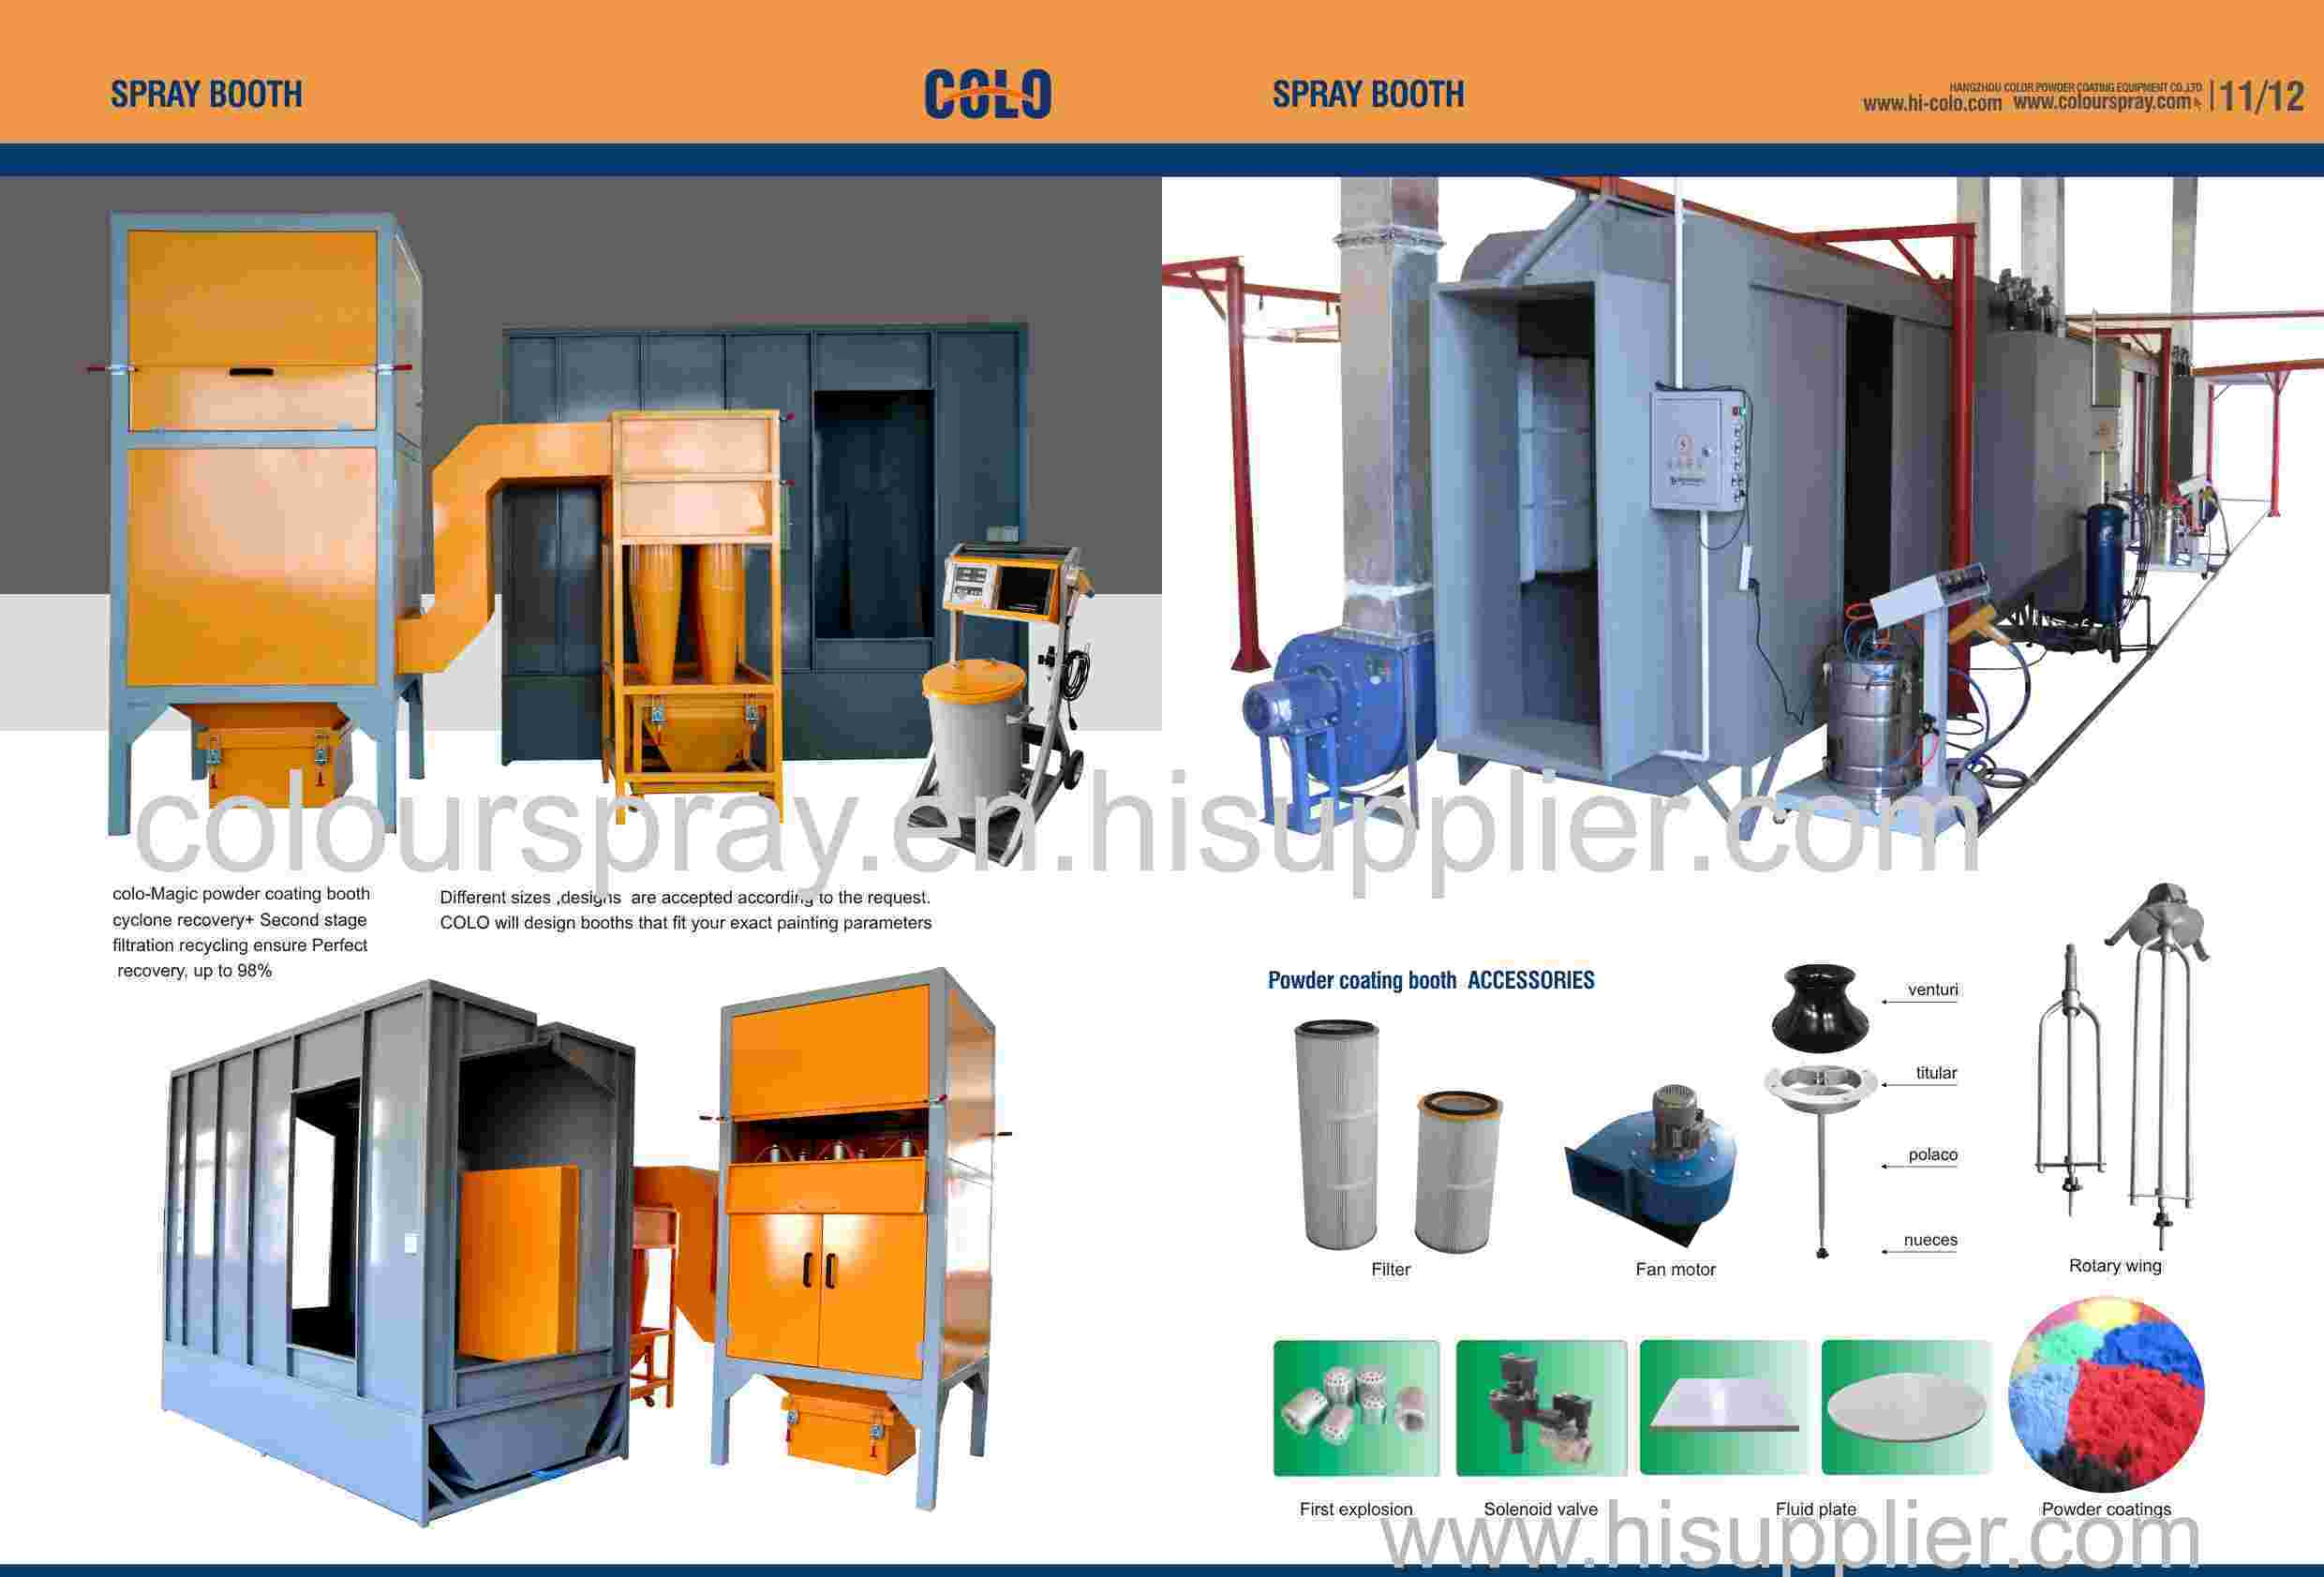 powder coating booth catalogue